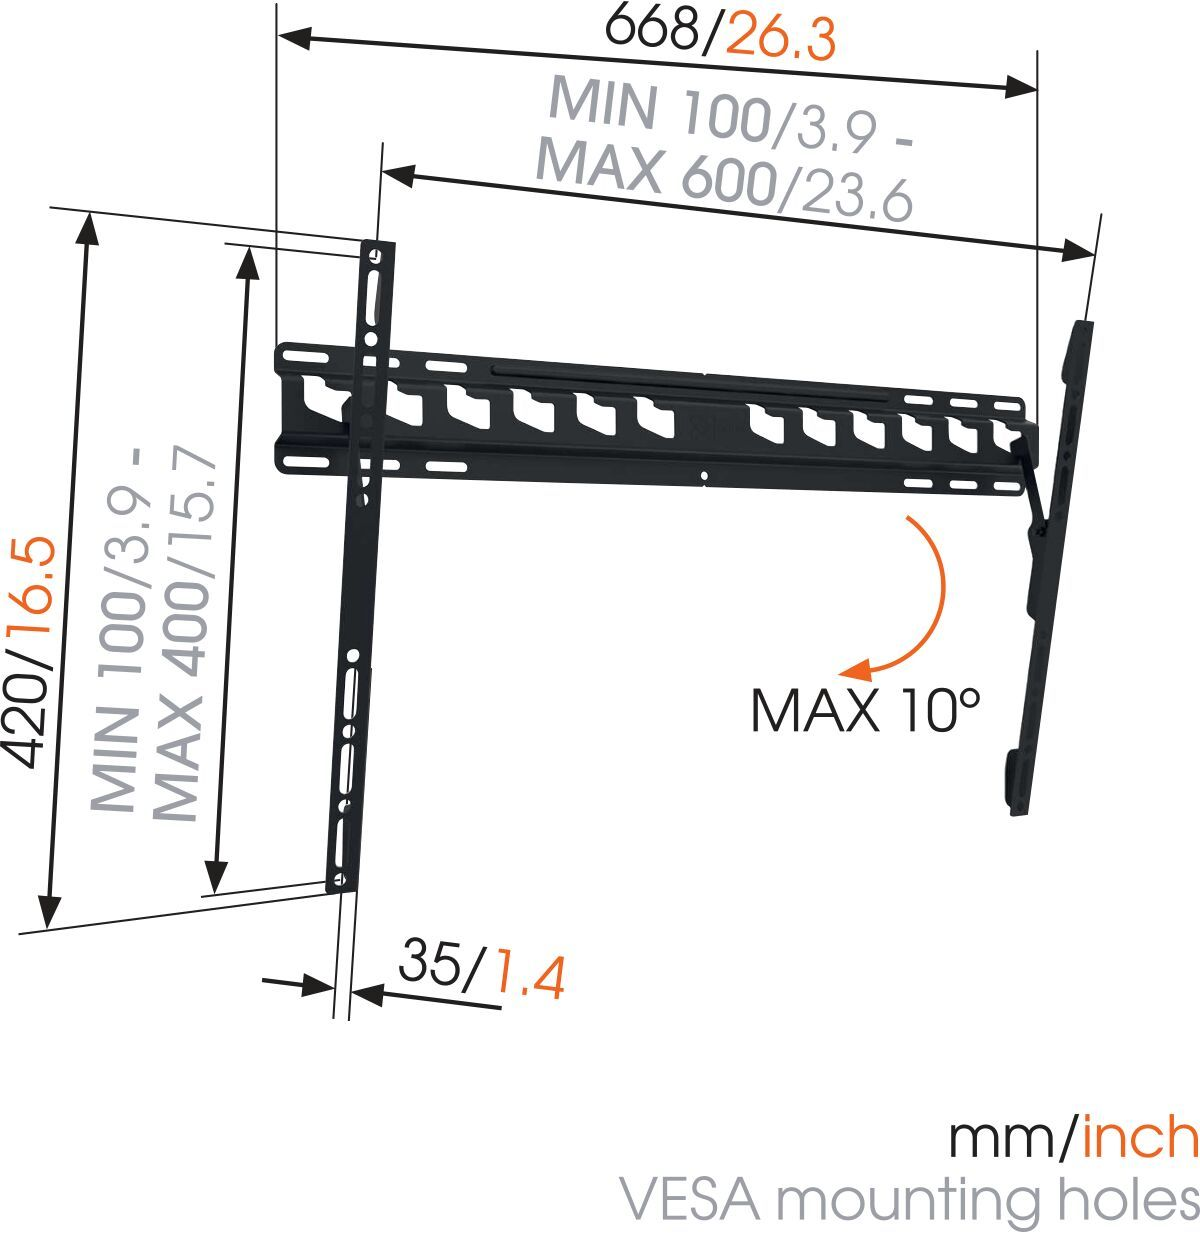 Vogel's MA 4010 (A1) Tilting TV Wall Mount - Suitable for 40 up to 65 inch TVs up to 60 kg - Tilt up to 10° - Dimensions